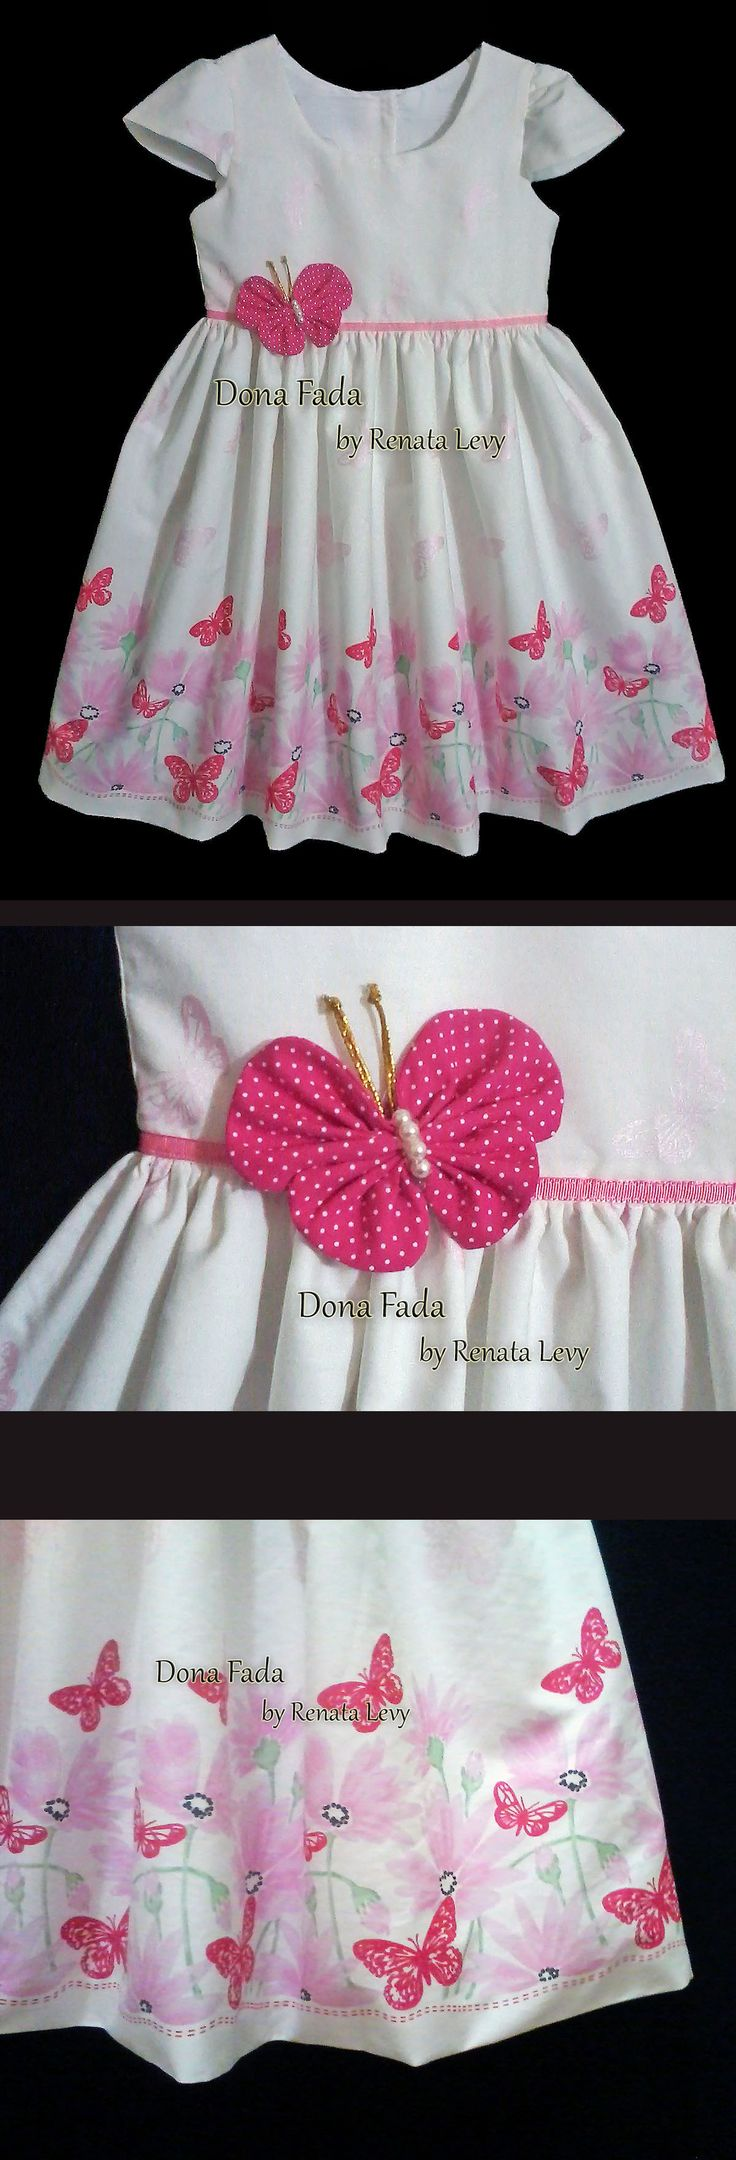 Vestido Barrado Borboletas - 7 anos - - - - - baby - infant - toddler - kids - clothes for girls - - - https://www.facebook.com/dona.fada.moda.para.fadinhas/